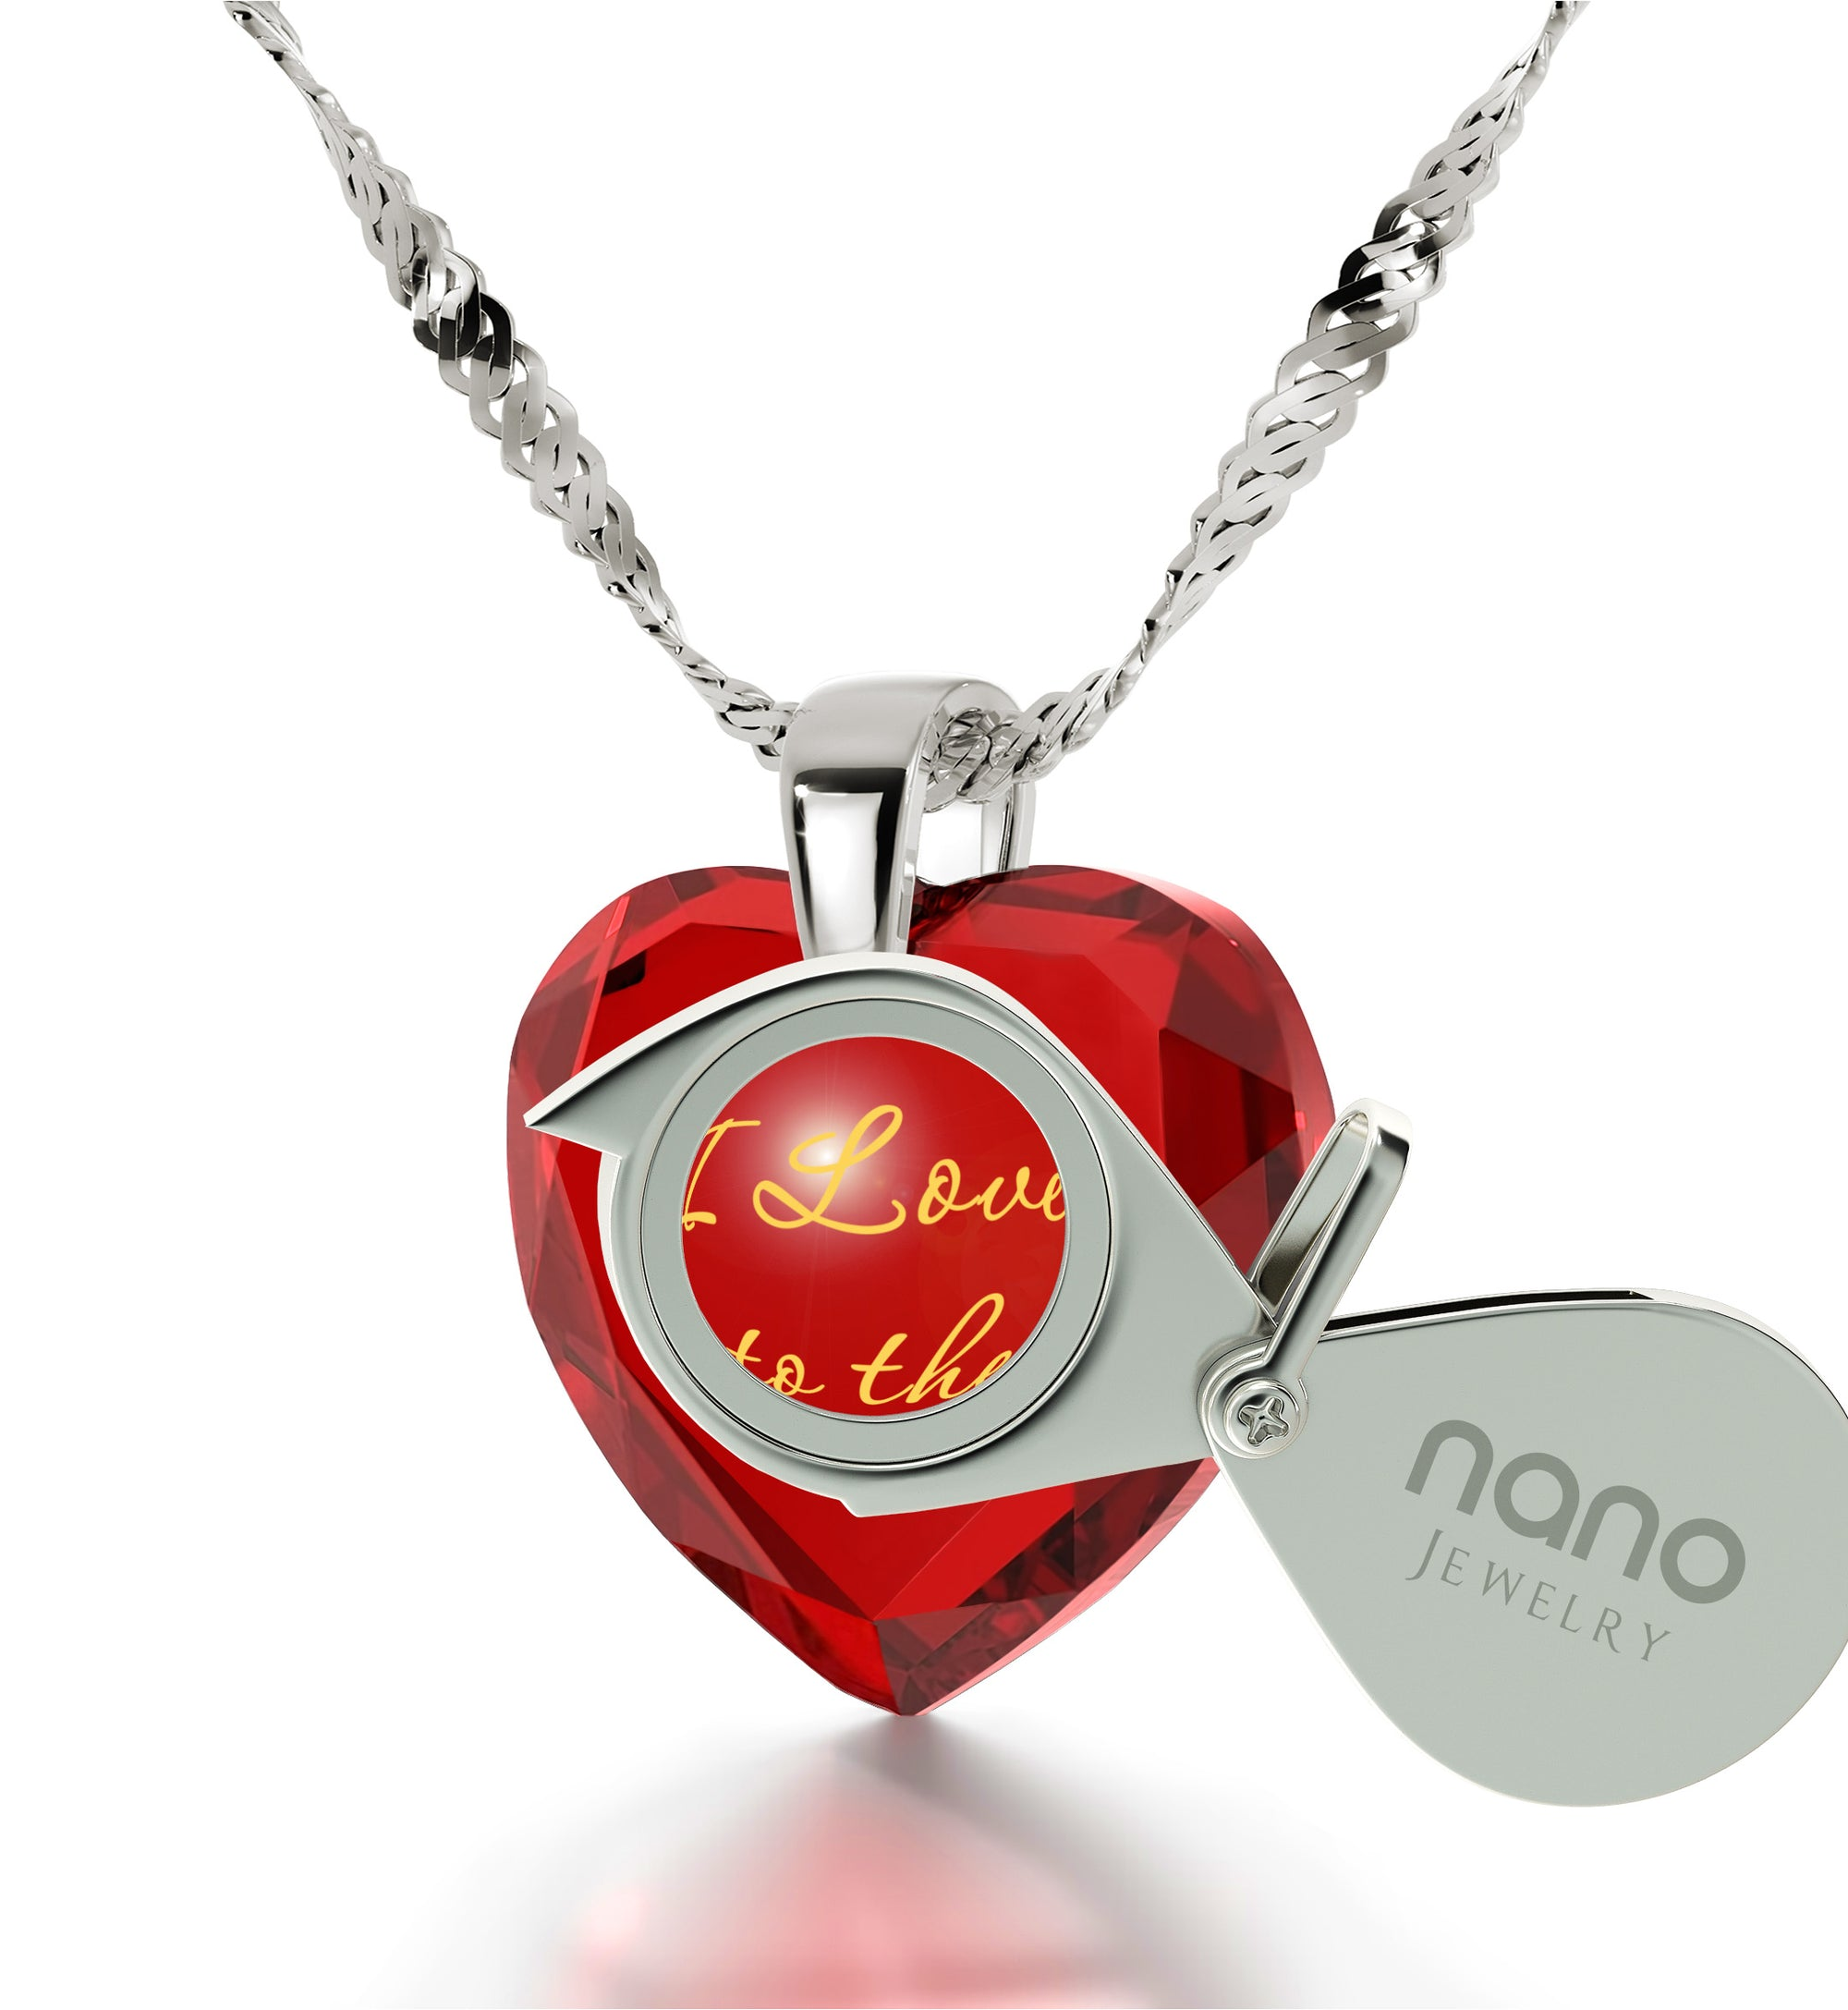 product red eater heart sale inspiring spirit necklace jewelry dream